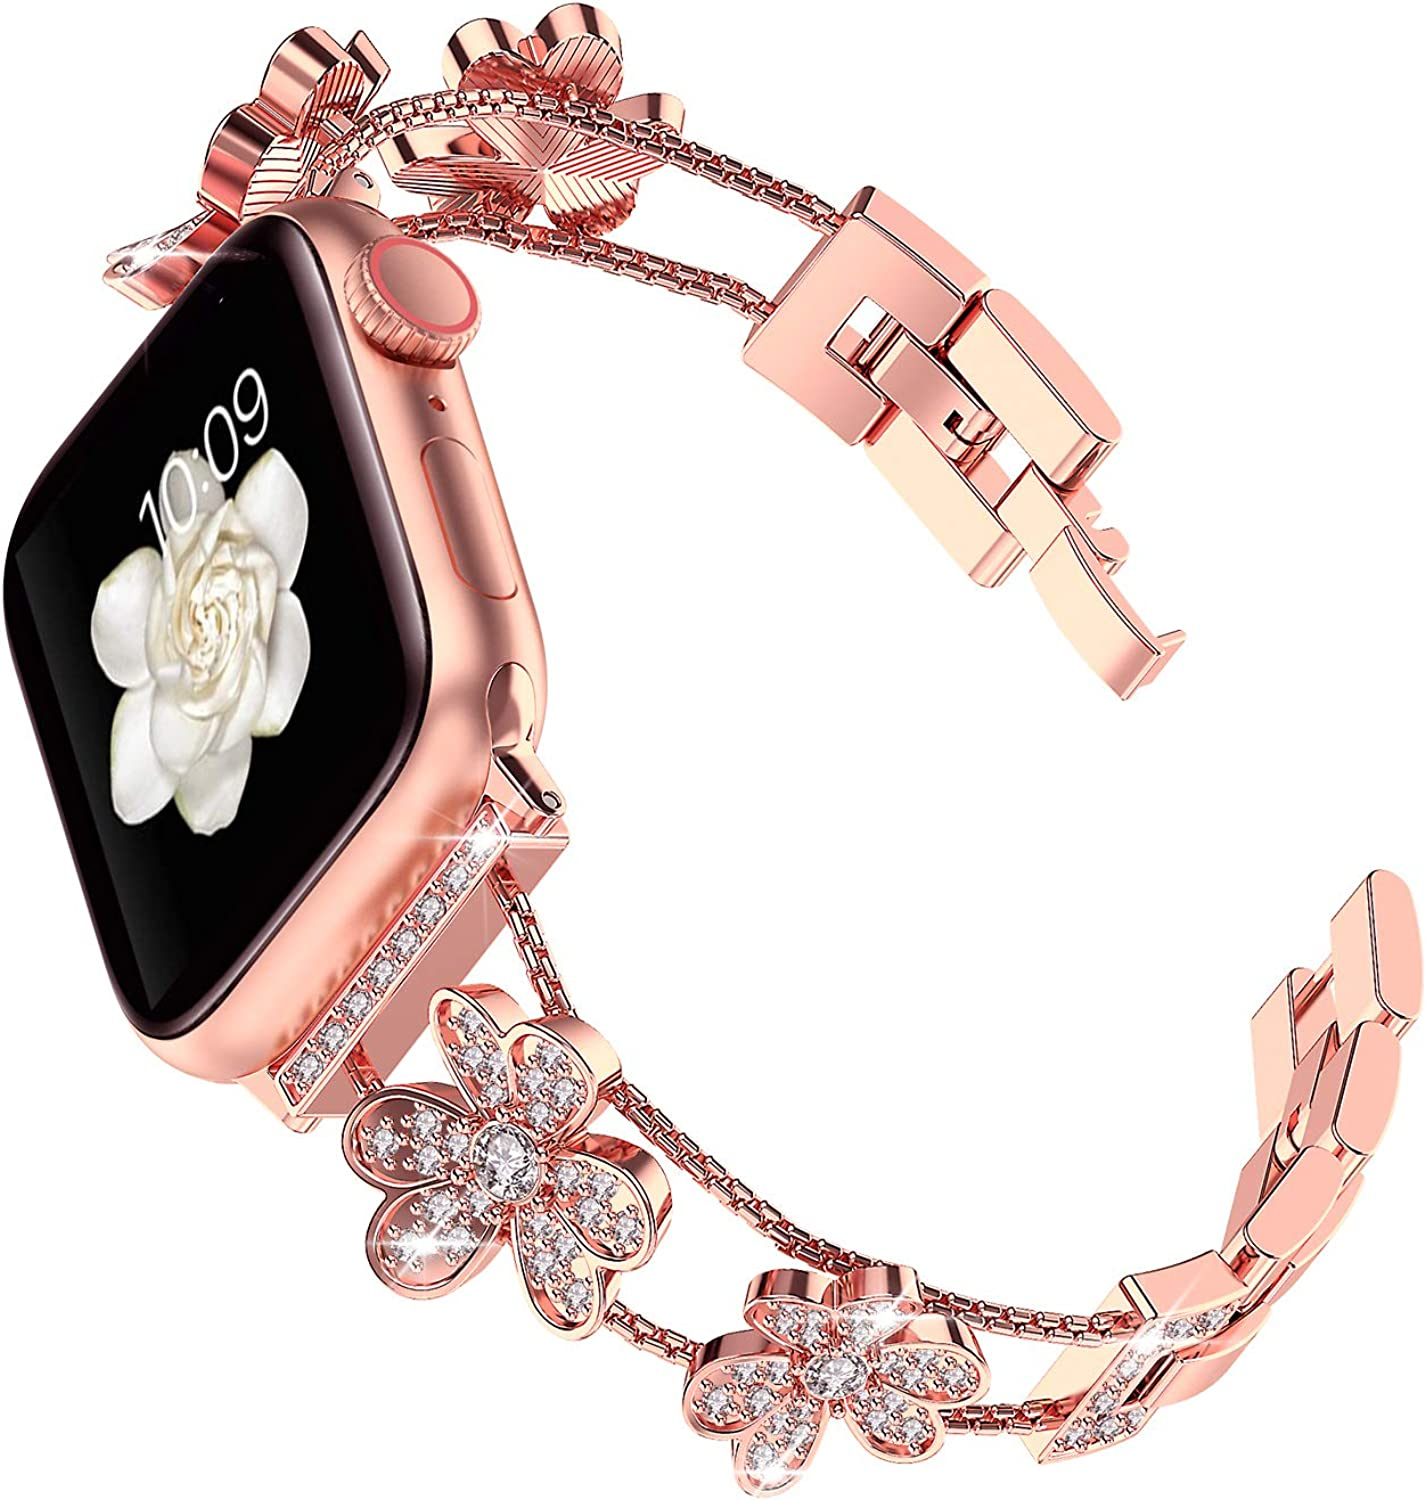 Blingbrione Bling Bands Compatible with Apple Watch 38mm 40mm 42mm 44mm Series 6/5/4/3/2/1, Steel Metal Bracelet Adjustable Buckle Clasp Link Wristband for Female Women Girls, Rose Gold Silver